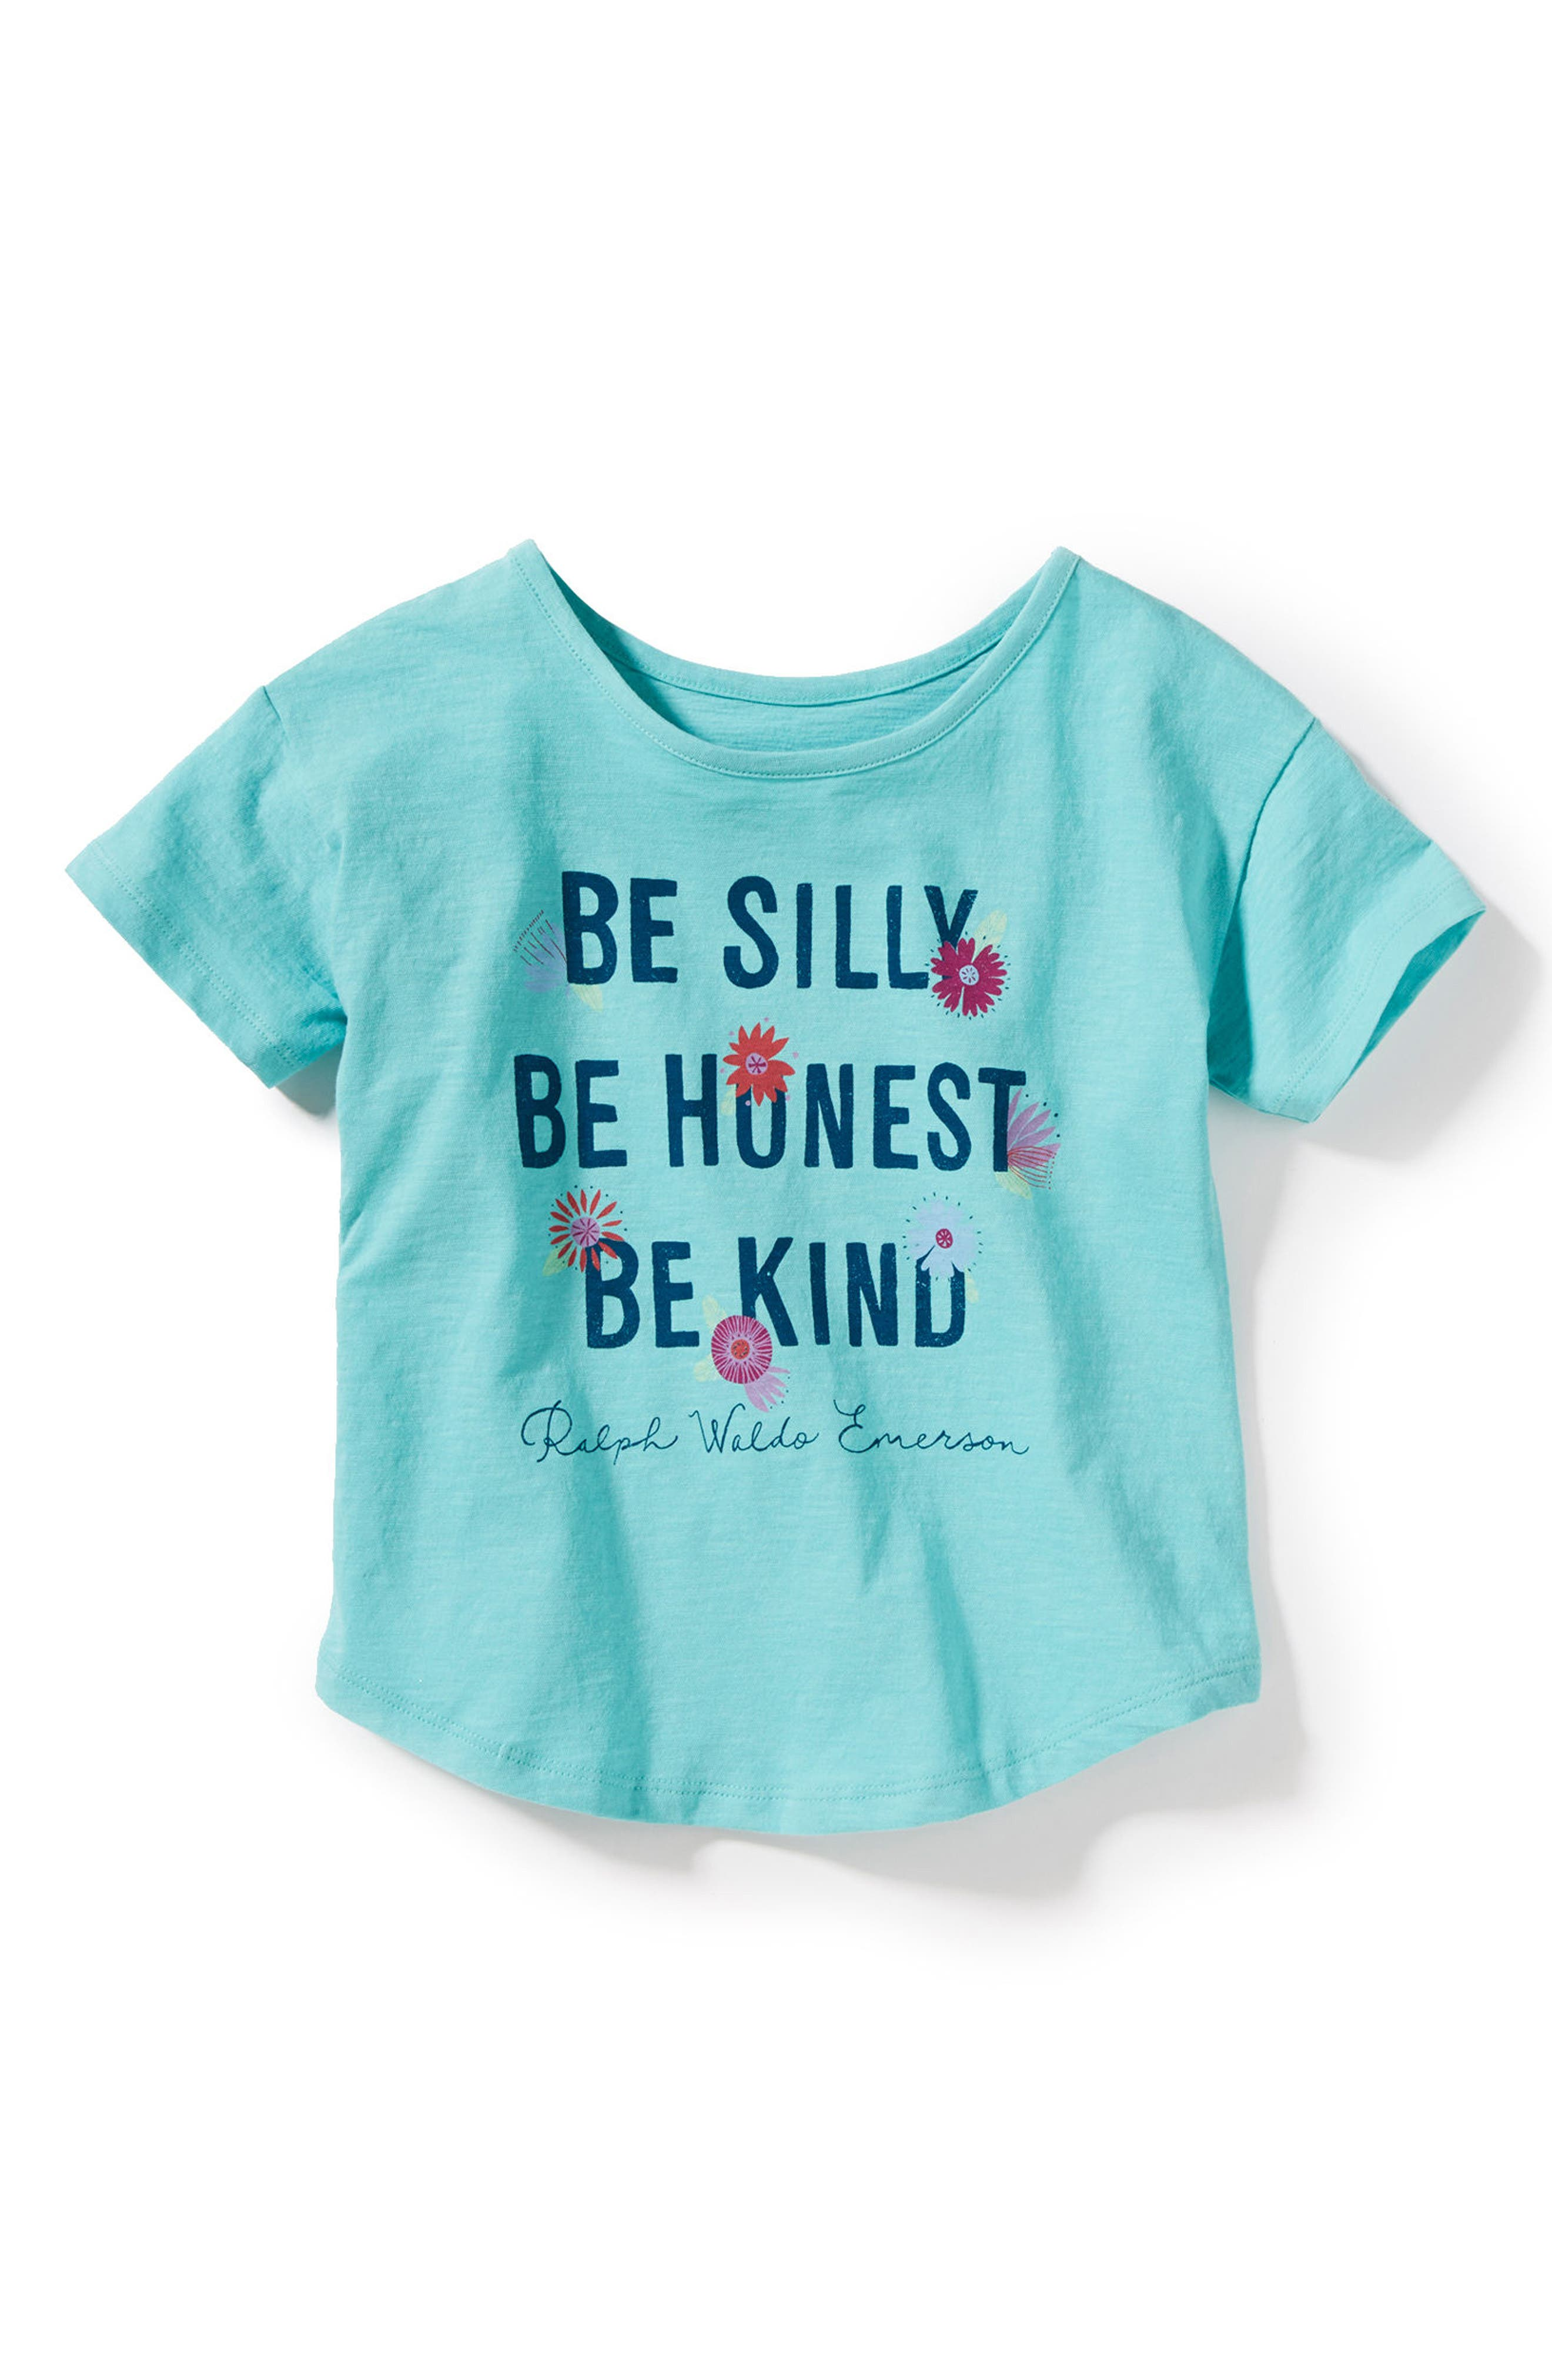 Be Silly Tee,                             Main thumbnail 1, color,                             407